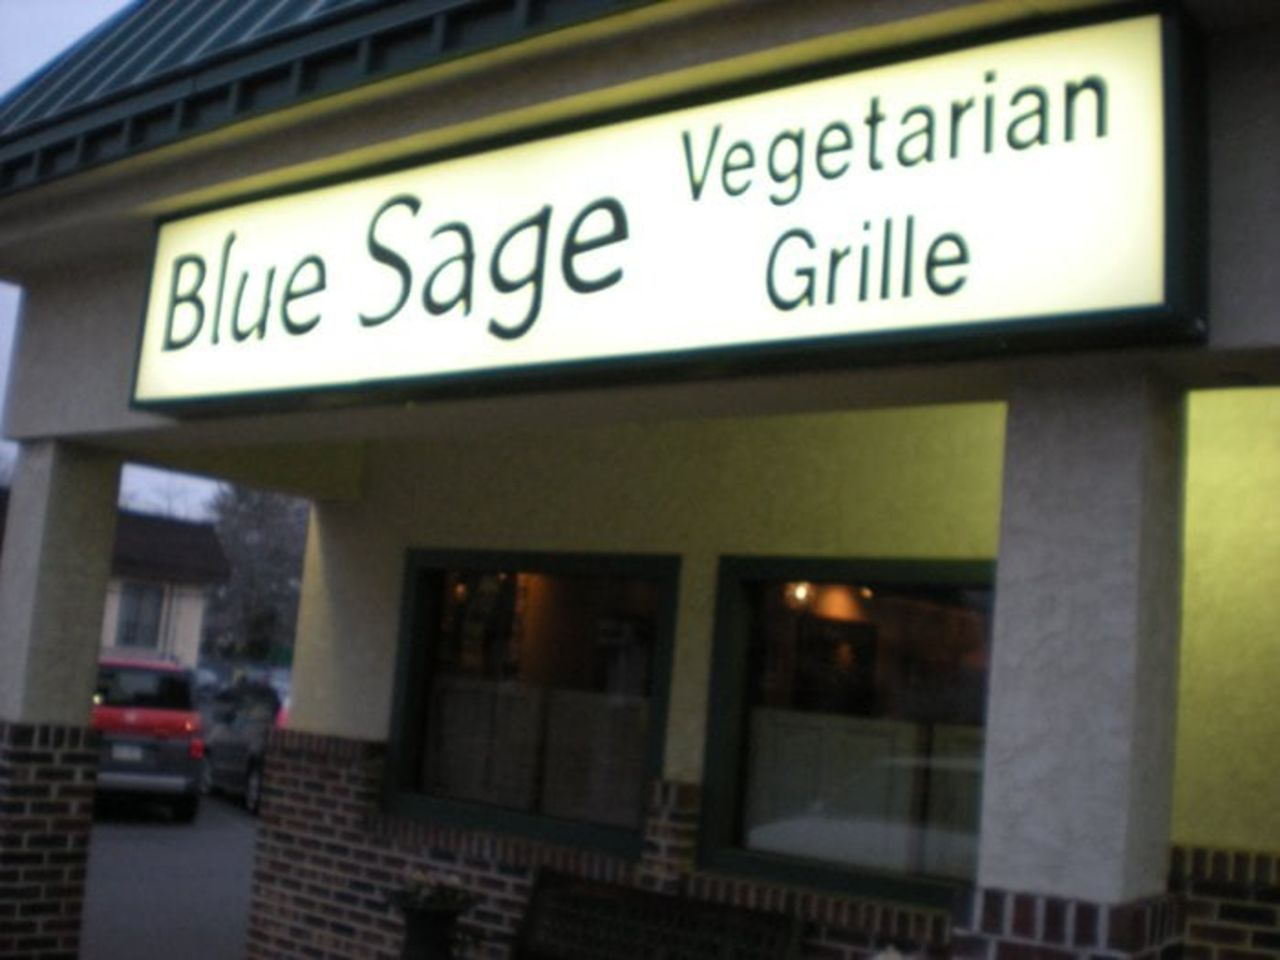 A photo of Blue Sage Vegetarian Grille